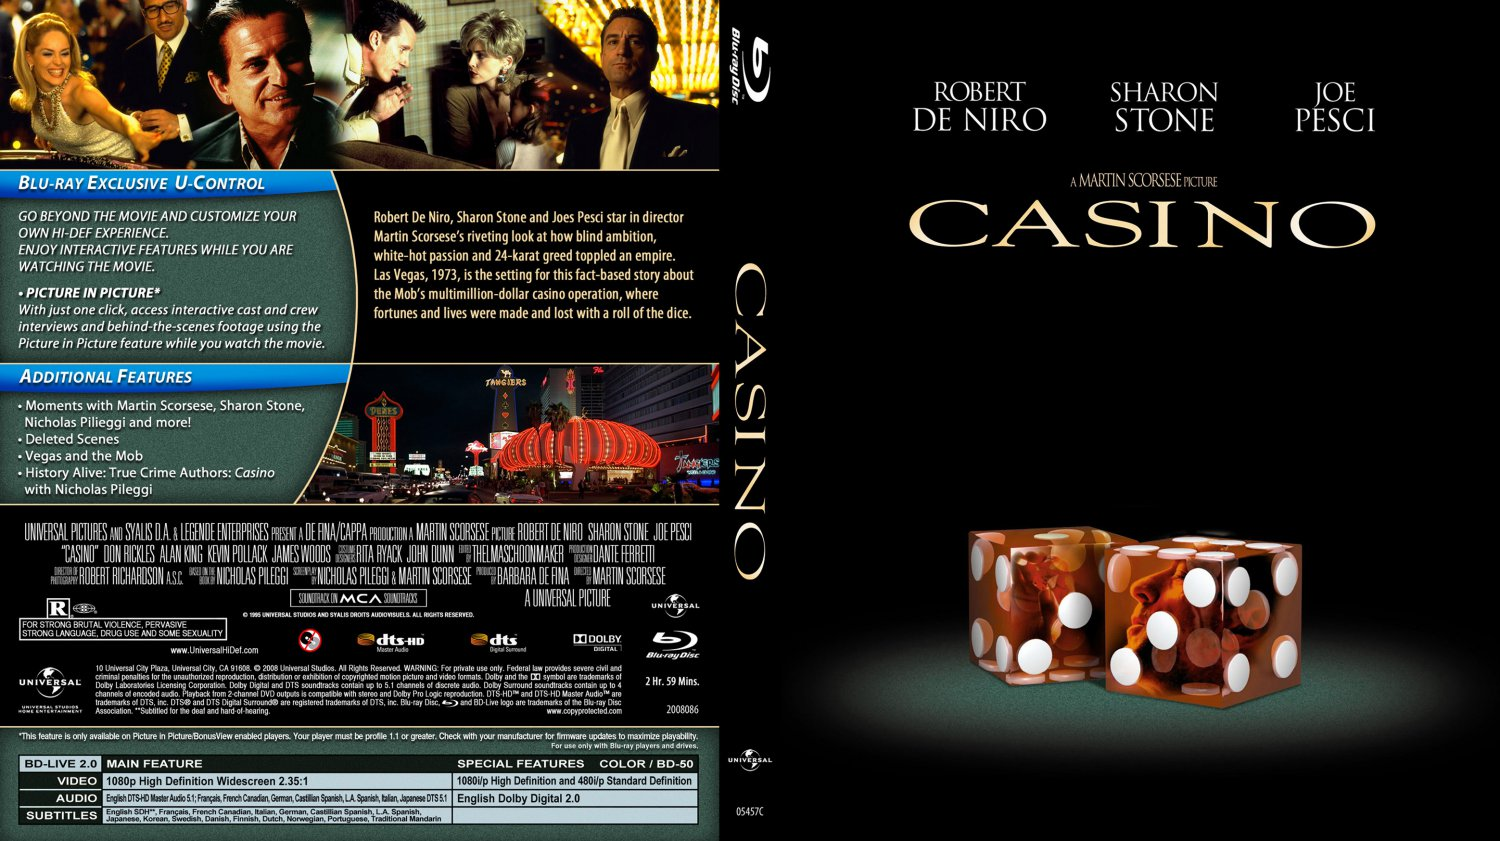 watch casino online free 1995 jeztspielen